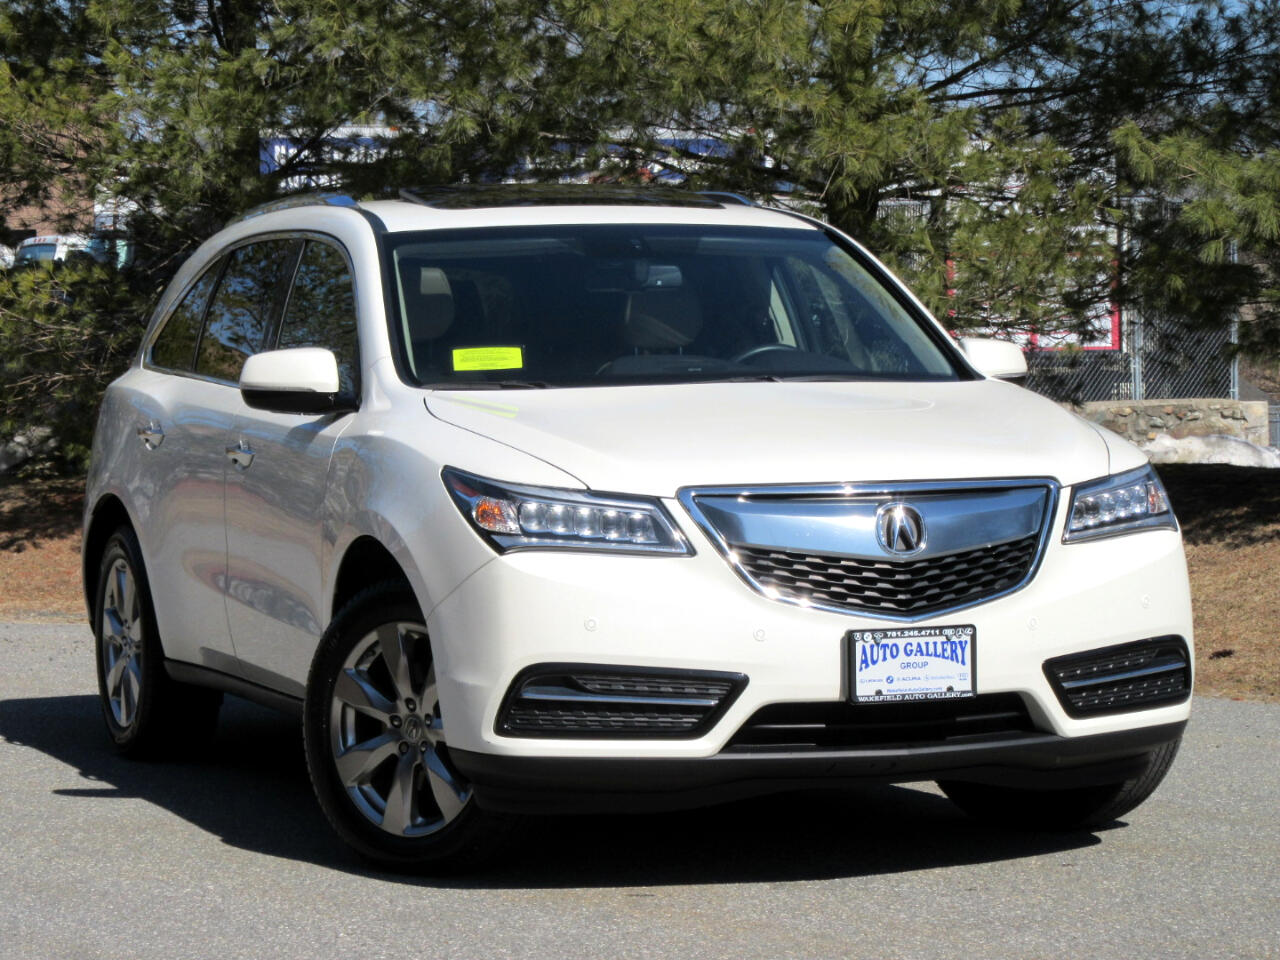 Acura MDX SH-AWD 4dr Advance/Entertainment Pkg 2015